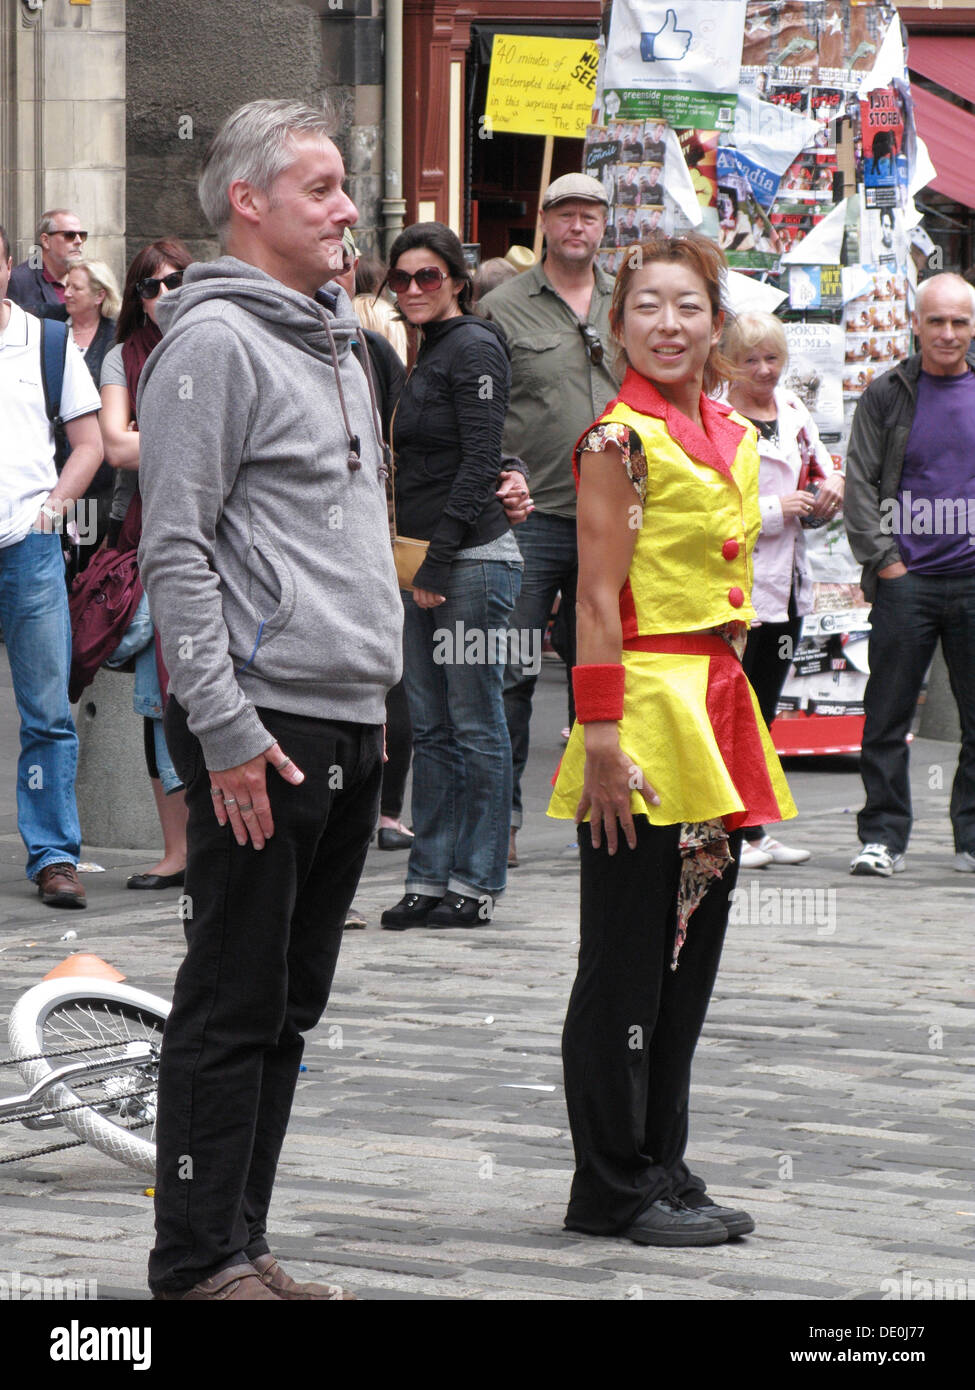 Chinese Woman Street Performer and Member of the Public Standing to Attention, The Royal Mile, Edinbrugh, Scotland, UK - Stock Image